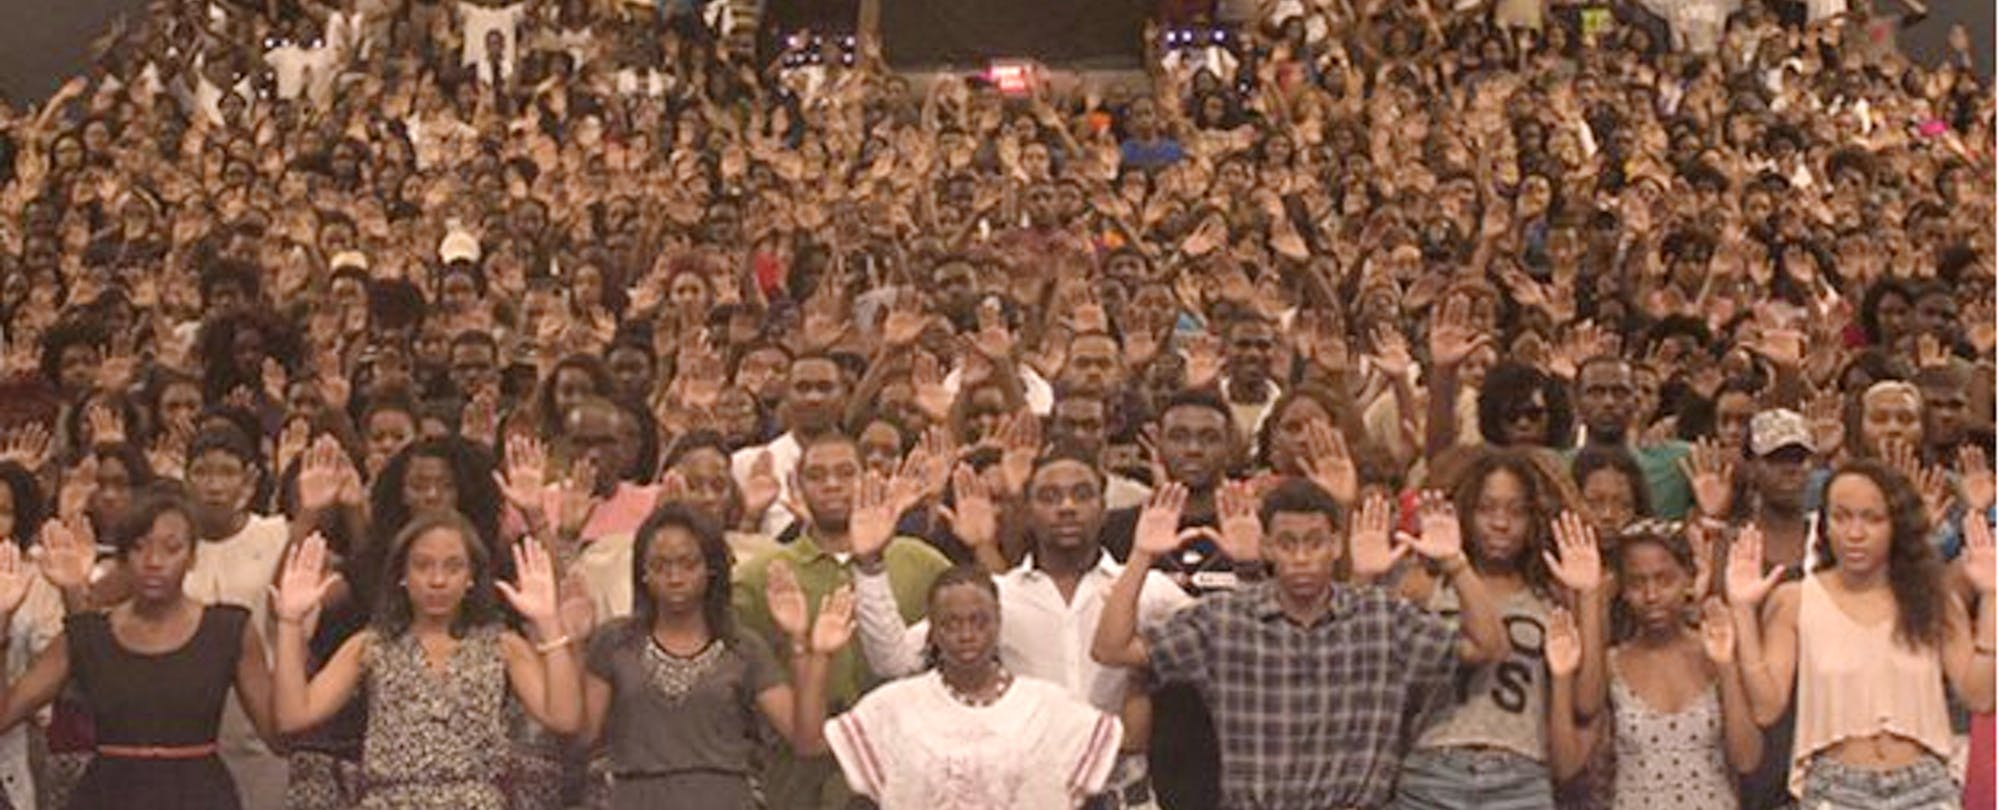 What Do We Teach When Kids Are Dying? #MichaelBrown